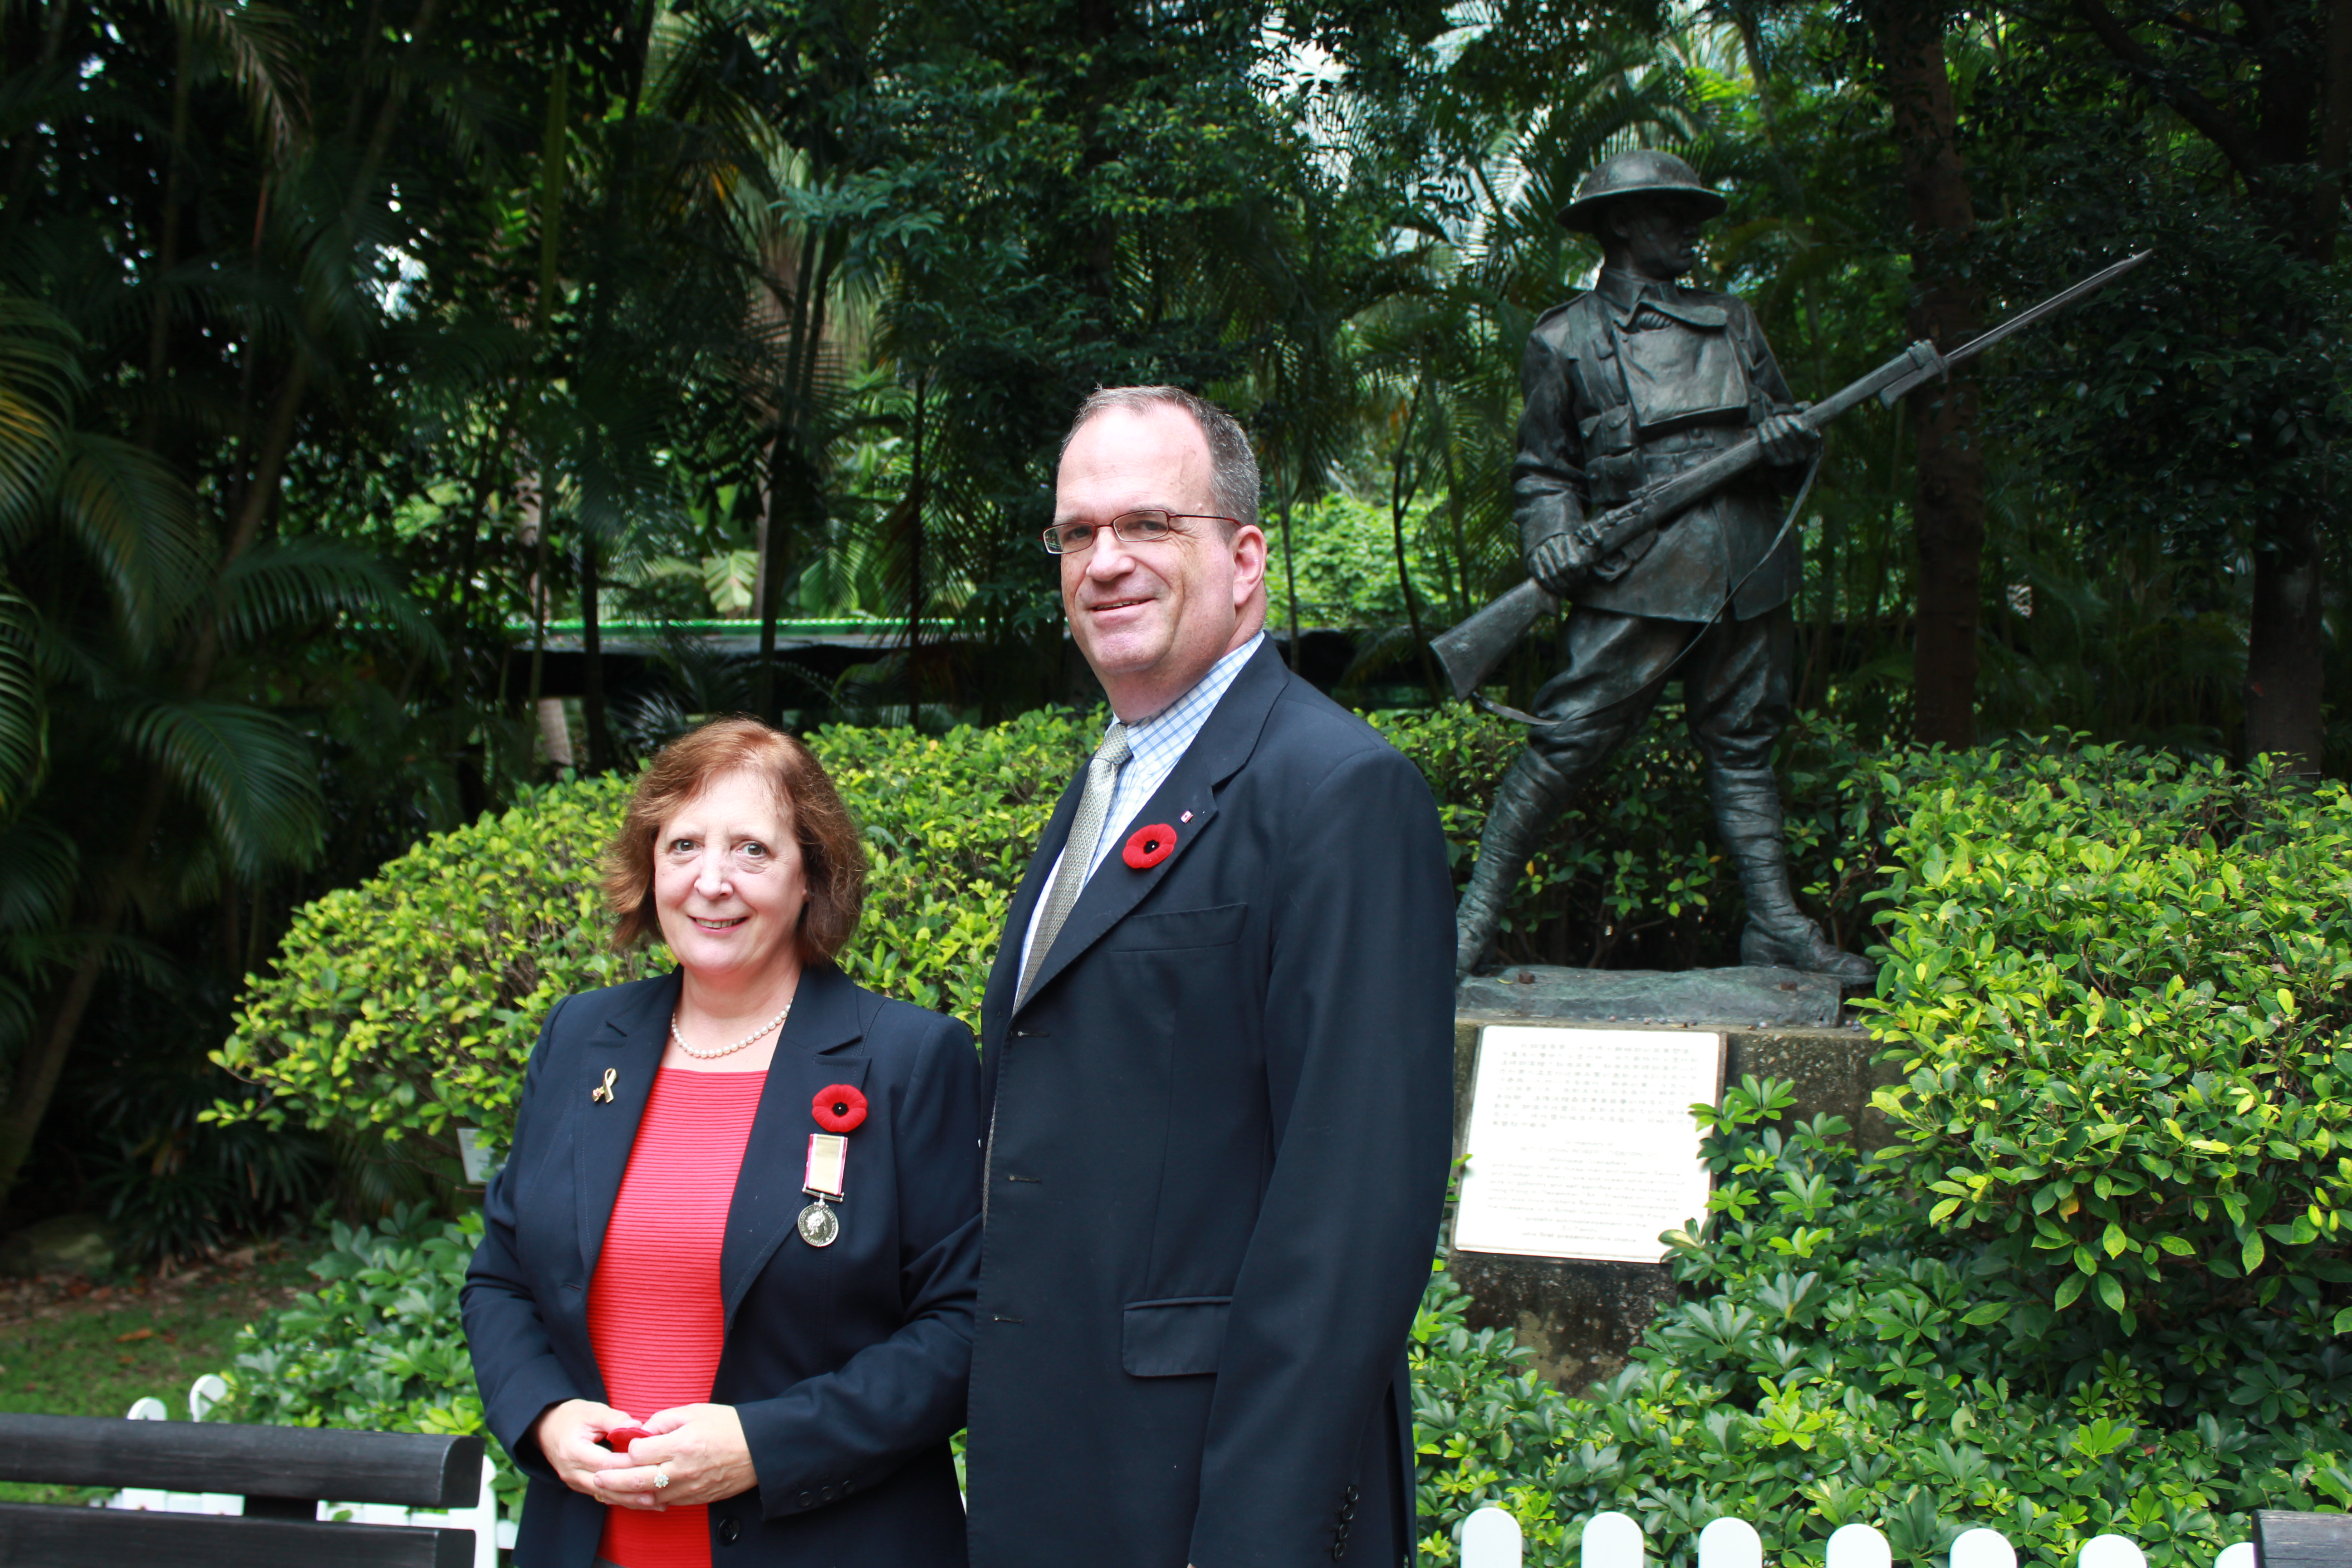 Reportage: Canadian CG commemorates Canadian WWII Hero